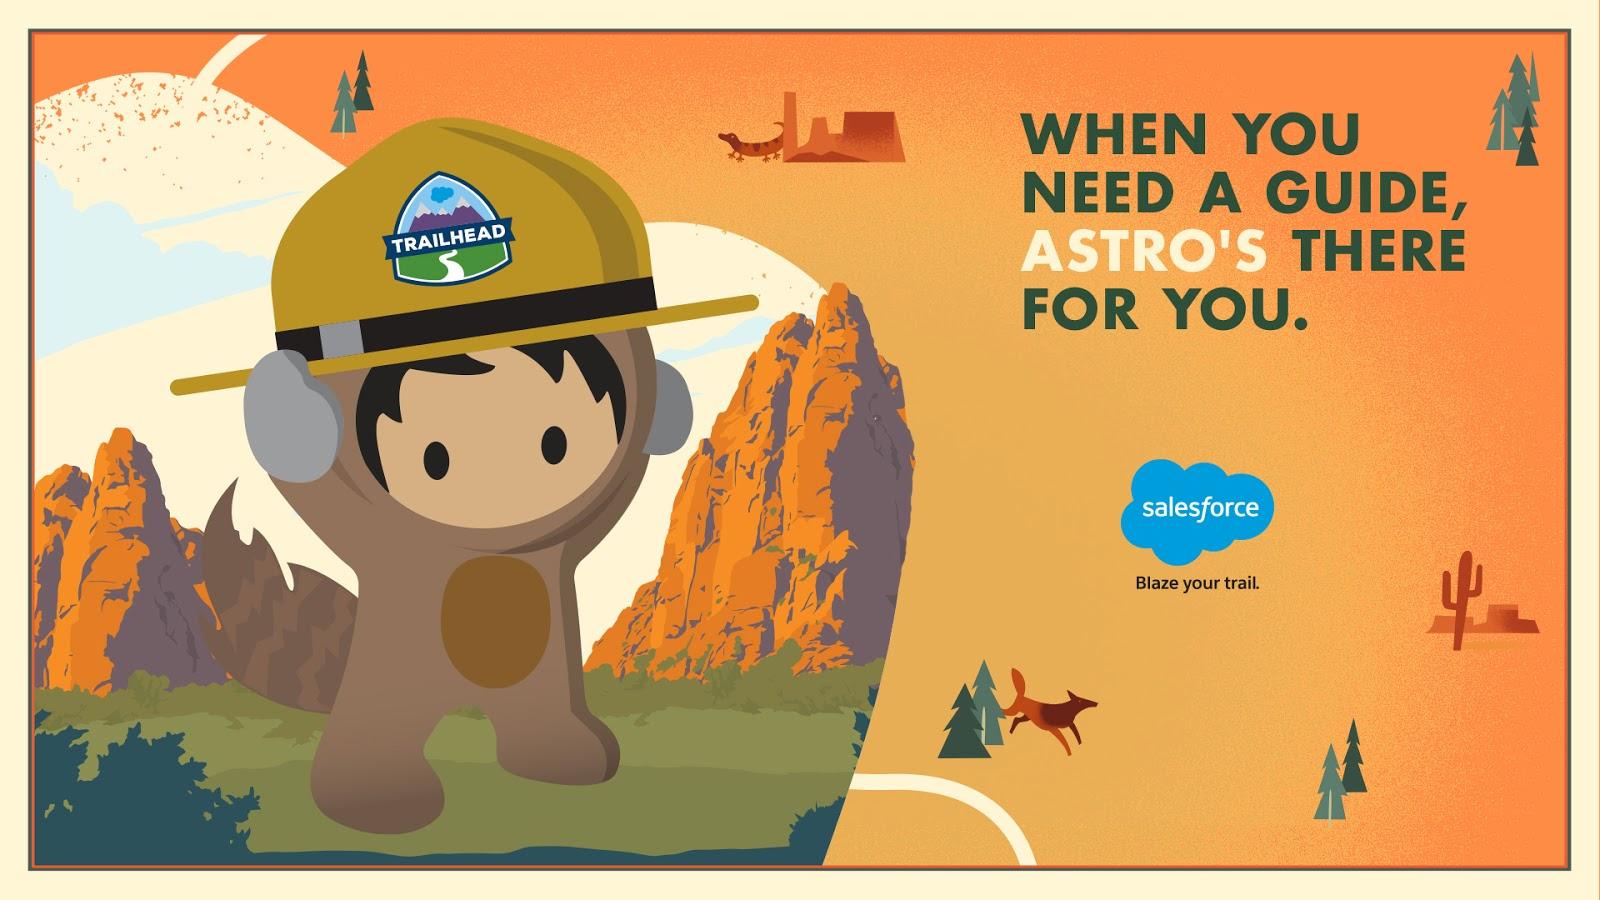 Astro: Your guide to Salesforce